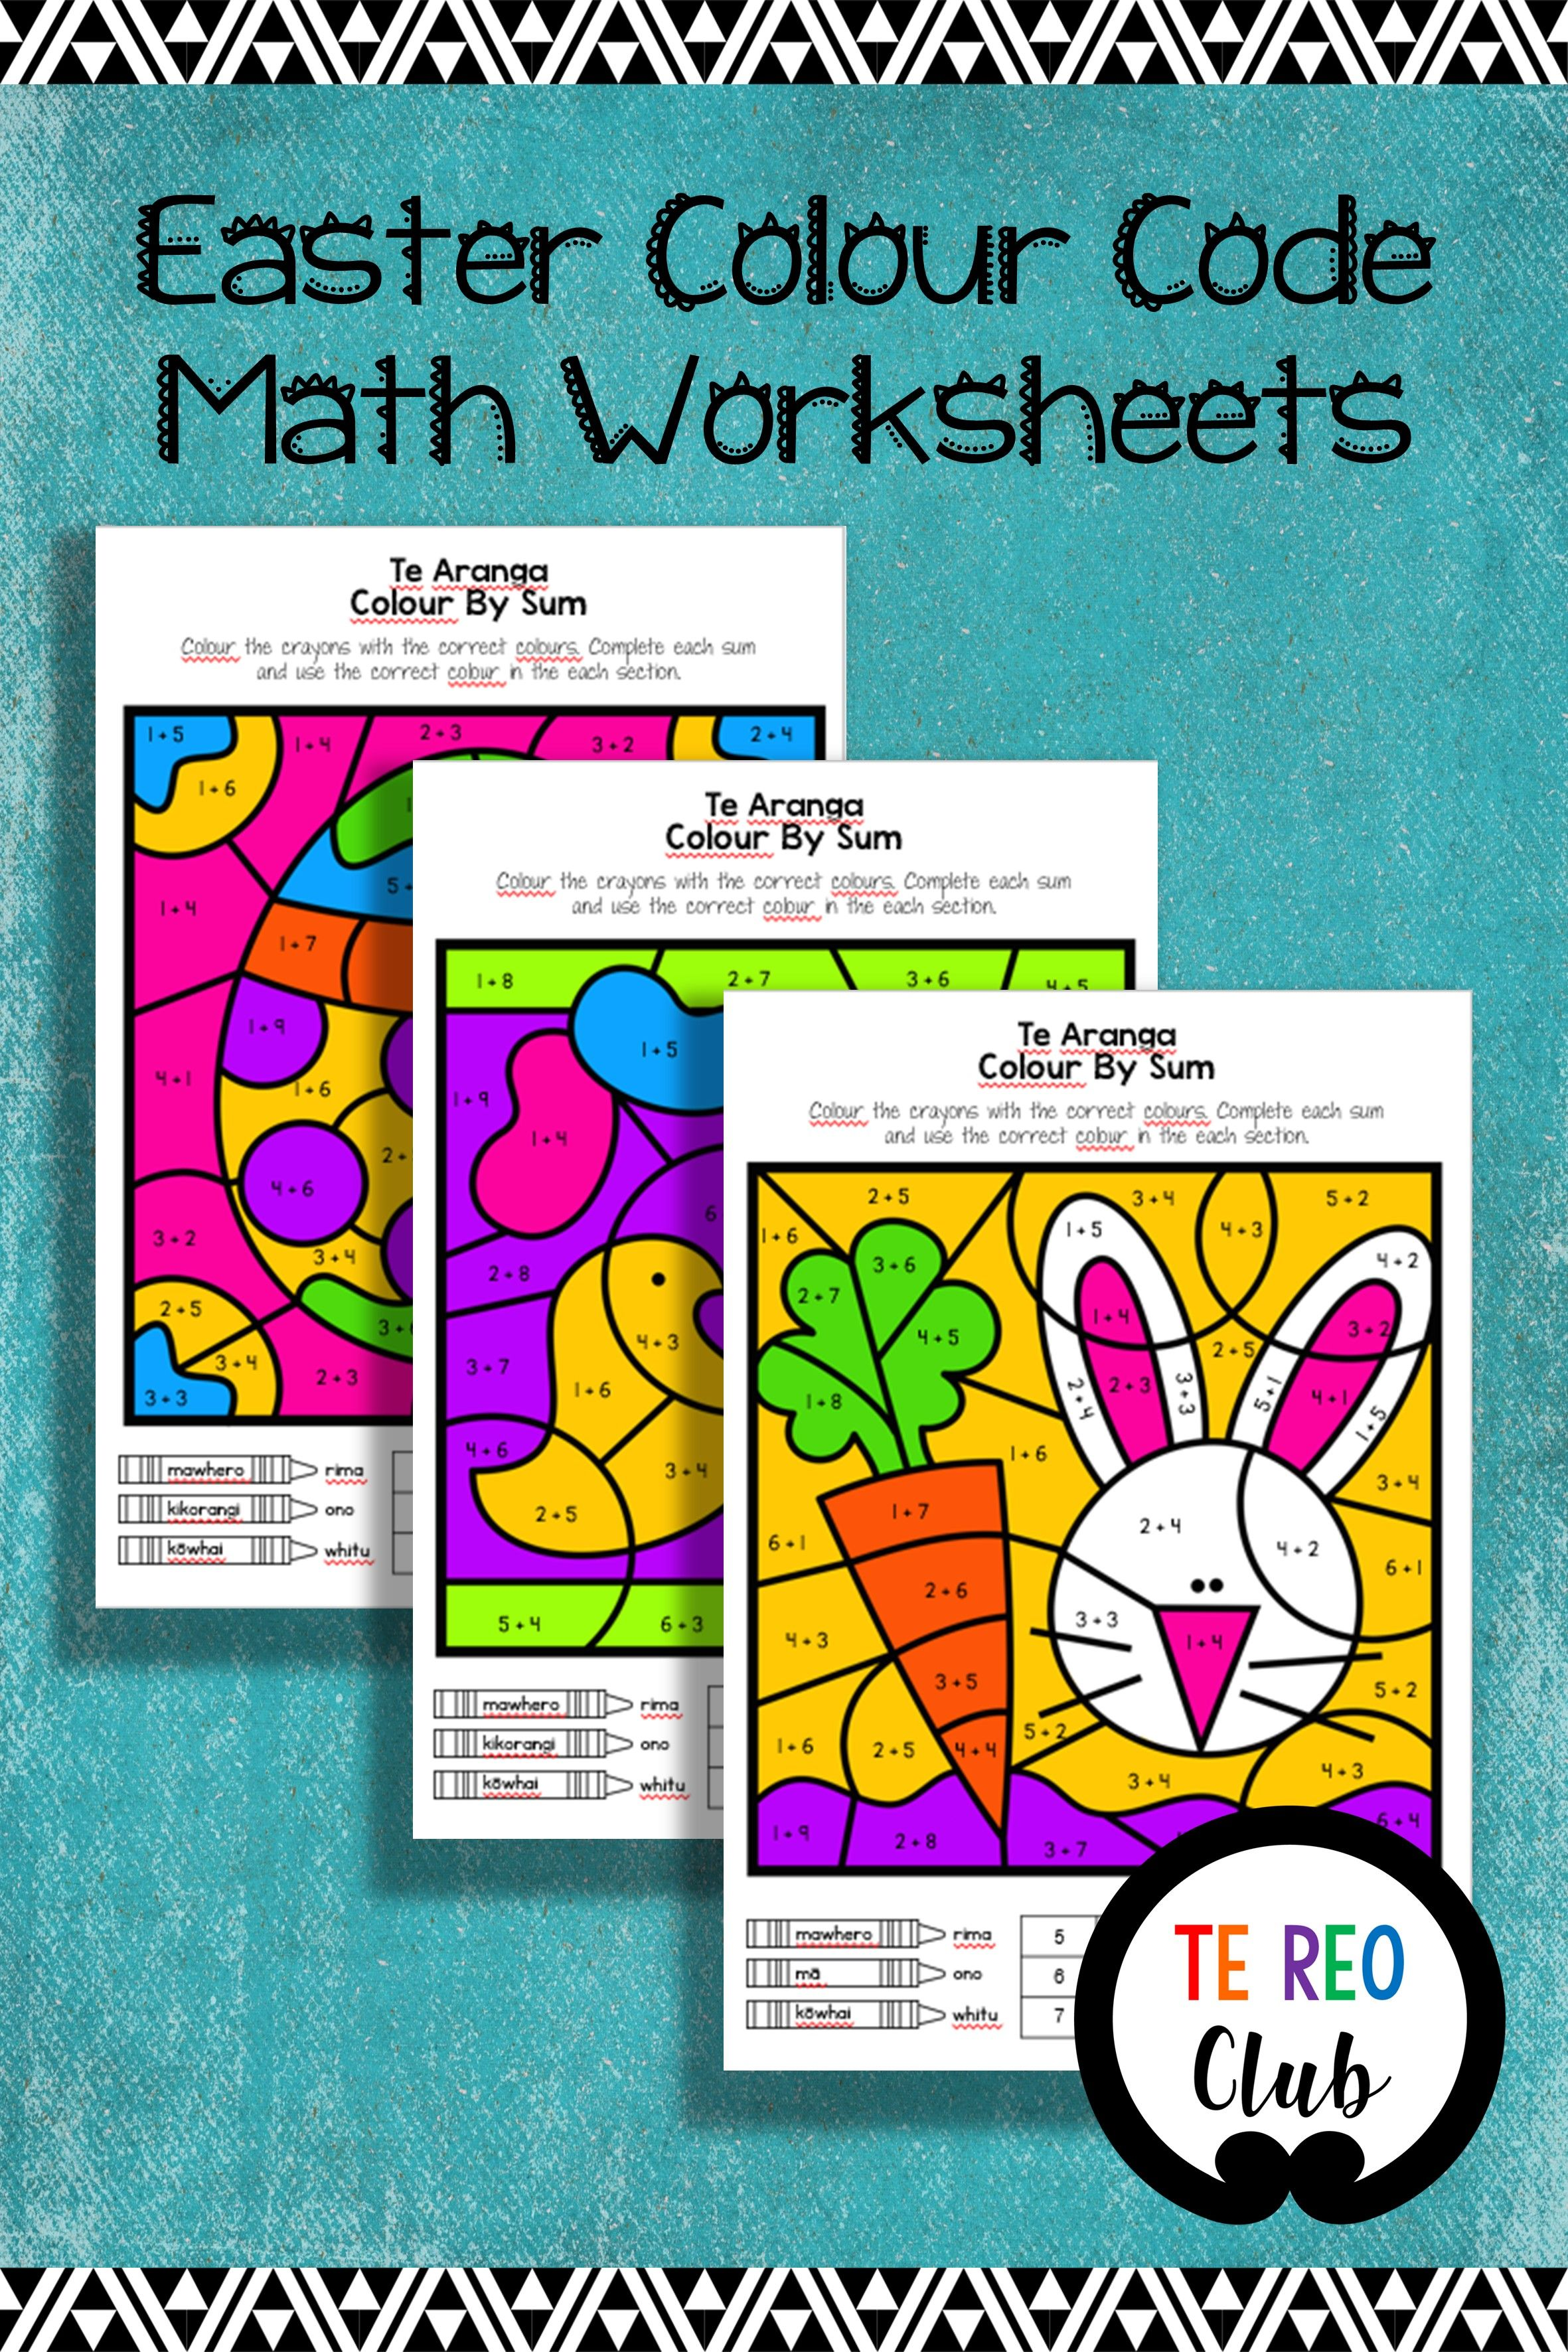 Easter Colour Code Math Worksheets In